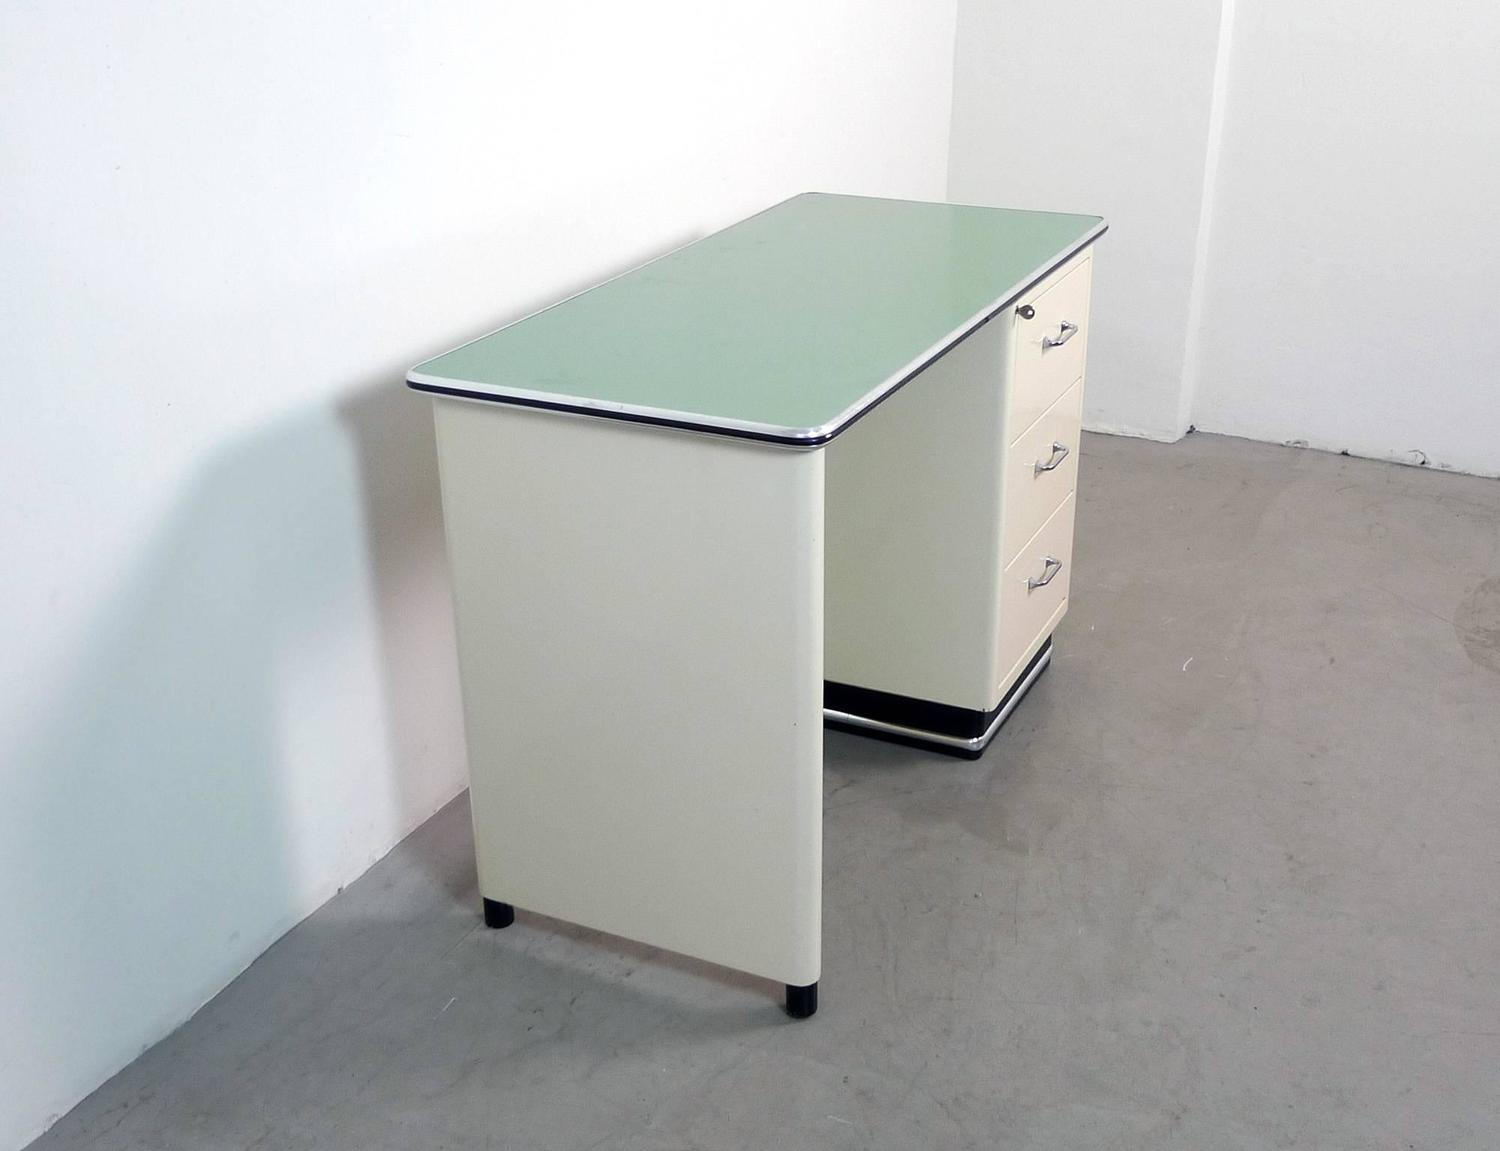 Beige Metal Desk with Mint Green Plate from Baisch